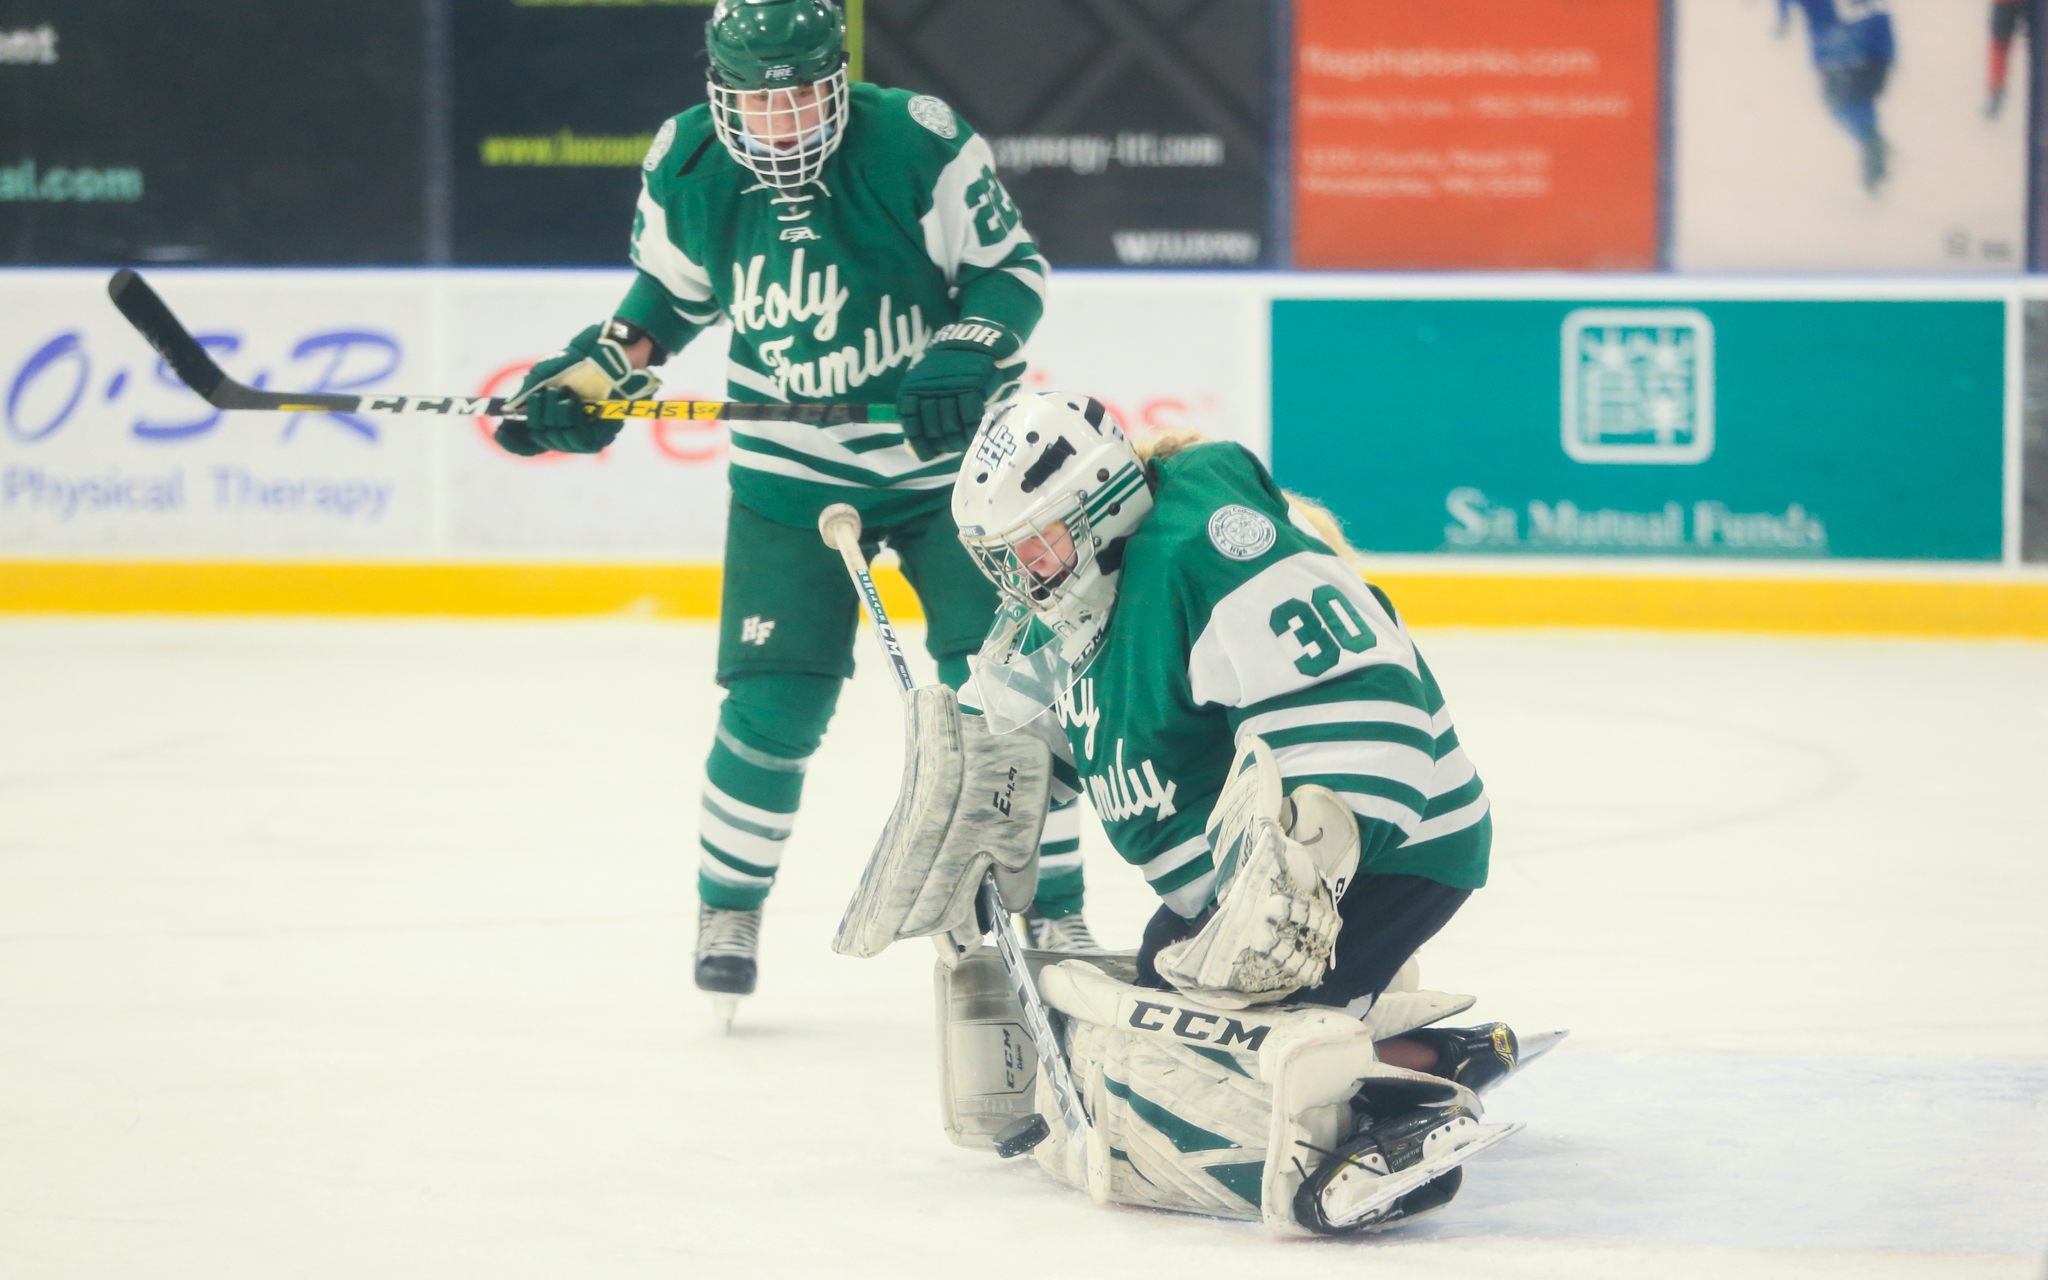 Holy Family Catholic goalie Sedona Blair (30) makes a pad save against Minnetonka in the Class 2A, Section 2 final Saturday. The Fire fell to the Skippers 4-1 in Minnetonka. Photo by Jeff Lawler, SportsEngine